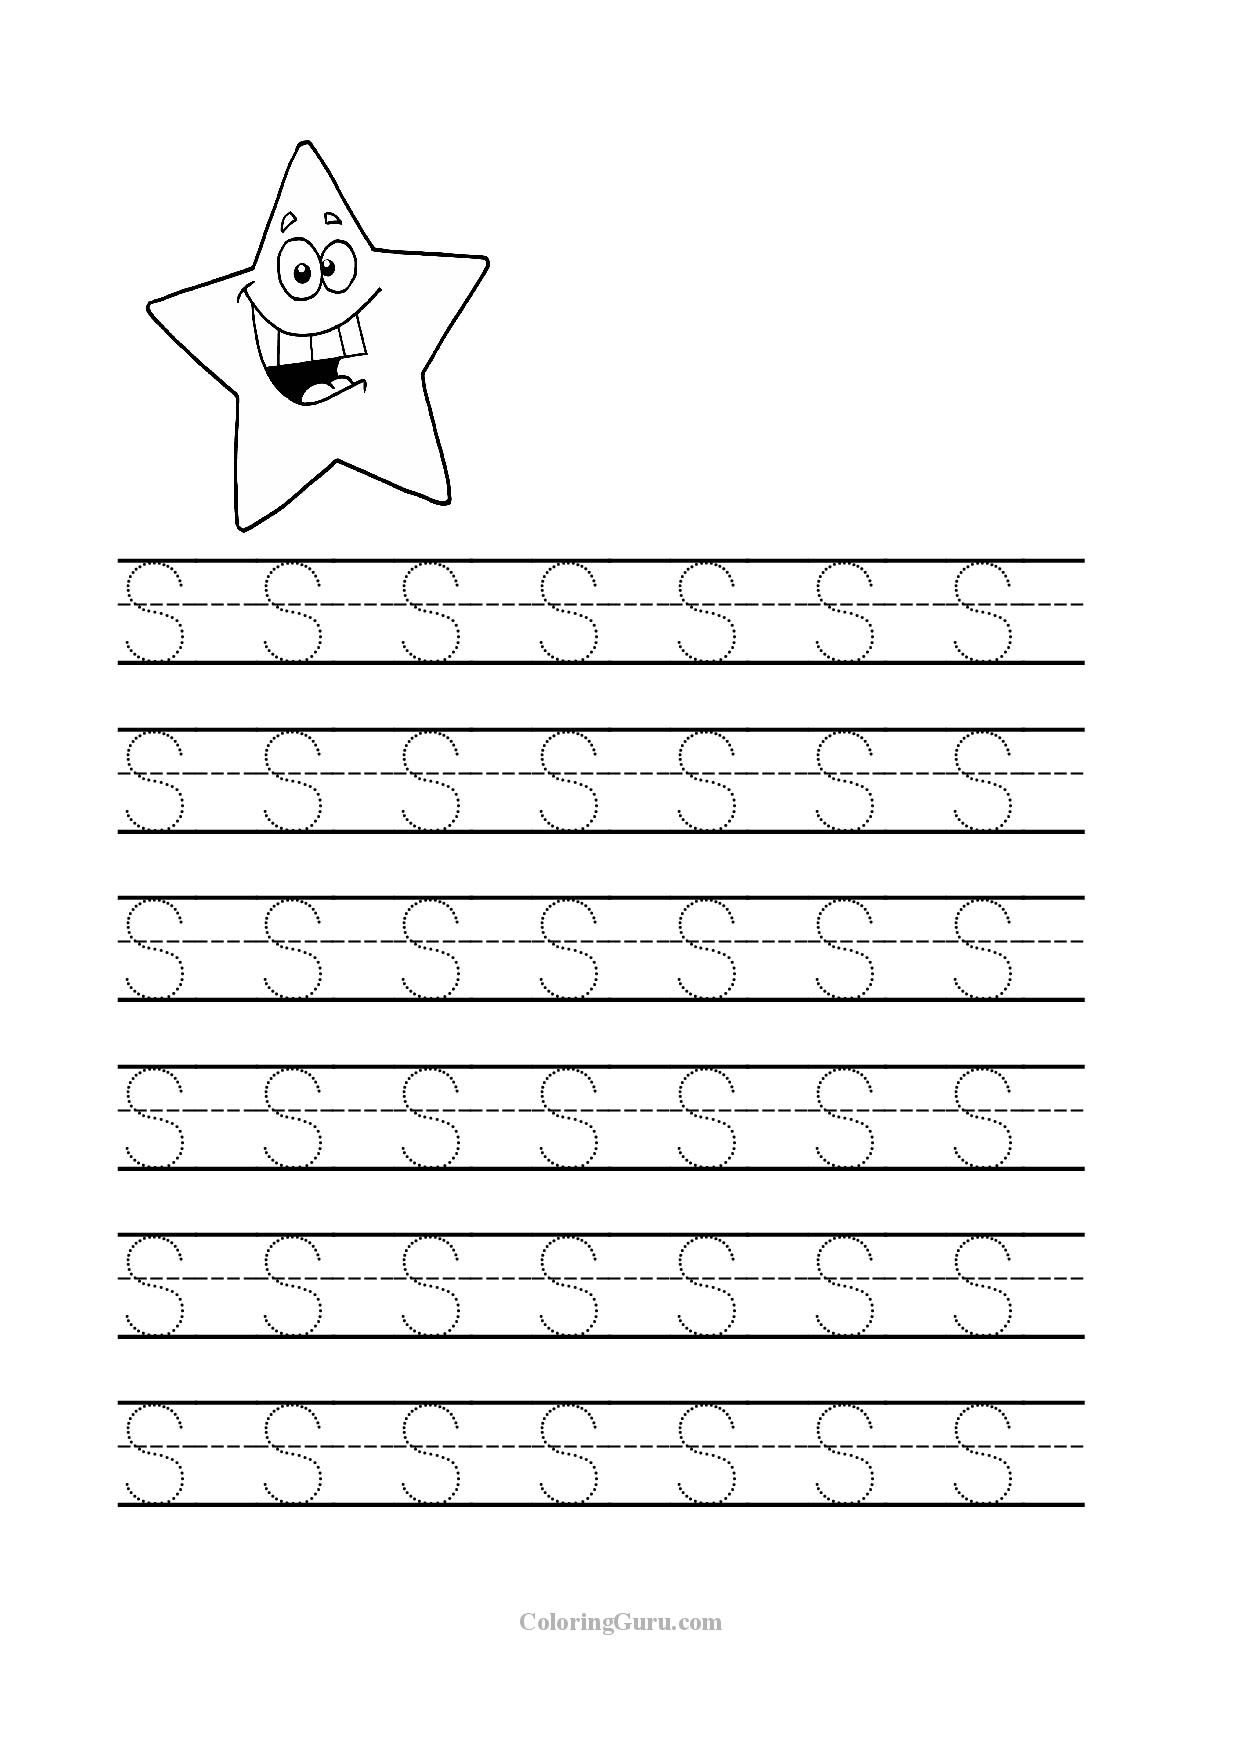 Free Printable Tracing Letter S Worksheets For Preschool throughout Preschool Tracing Letters Free Worksheets